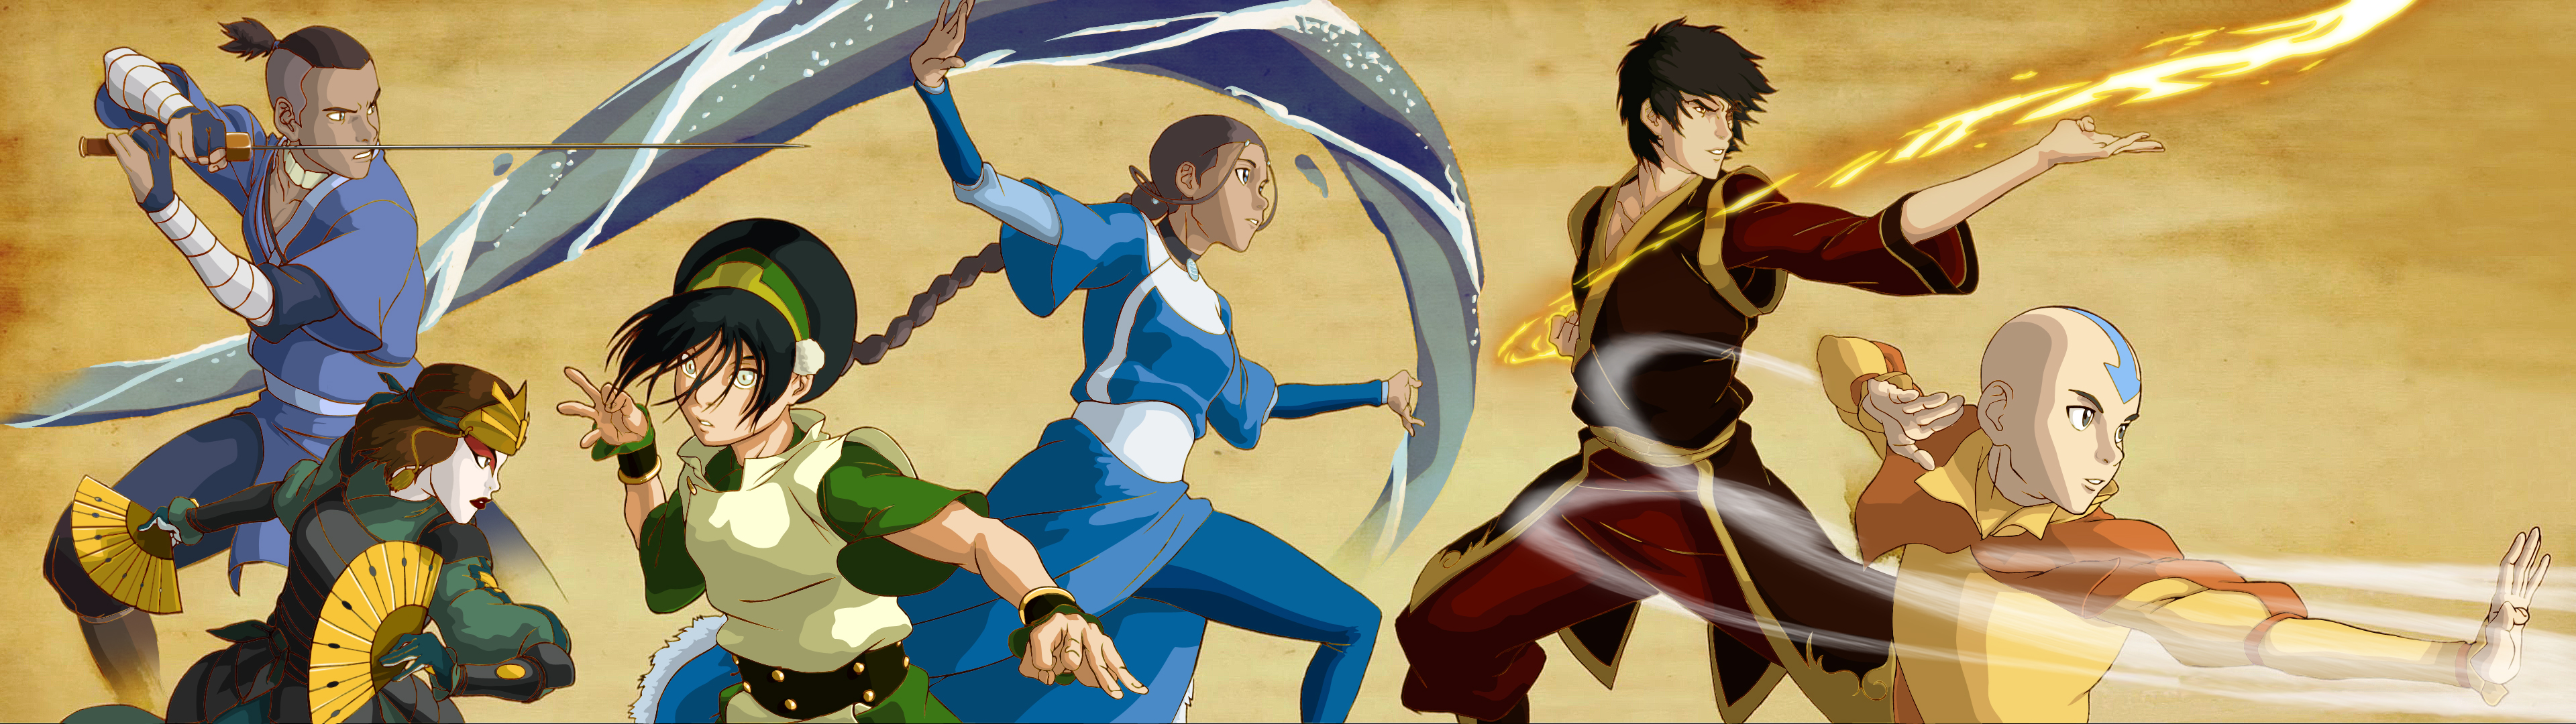 Fan art legend of korra intro coloured in aangs team avatar fan artfan art legend of korra intro coloured in aangs team avatar voltagebd Image collections